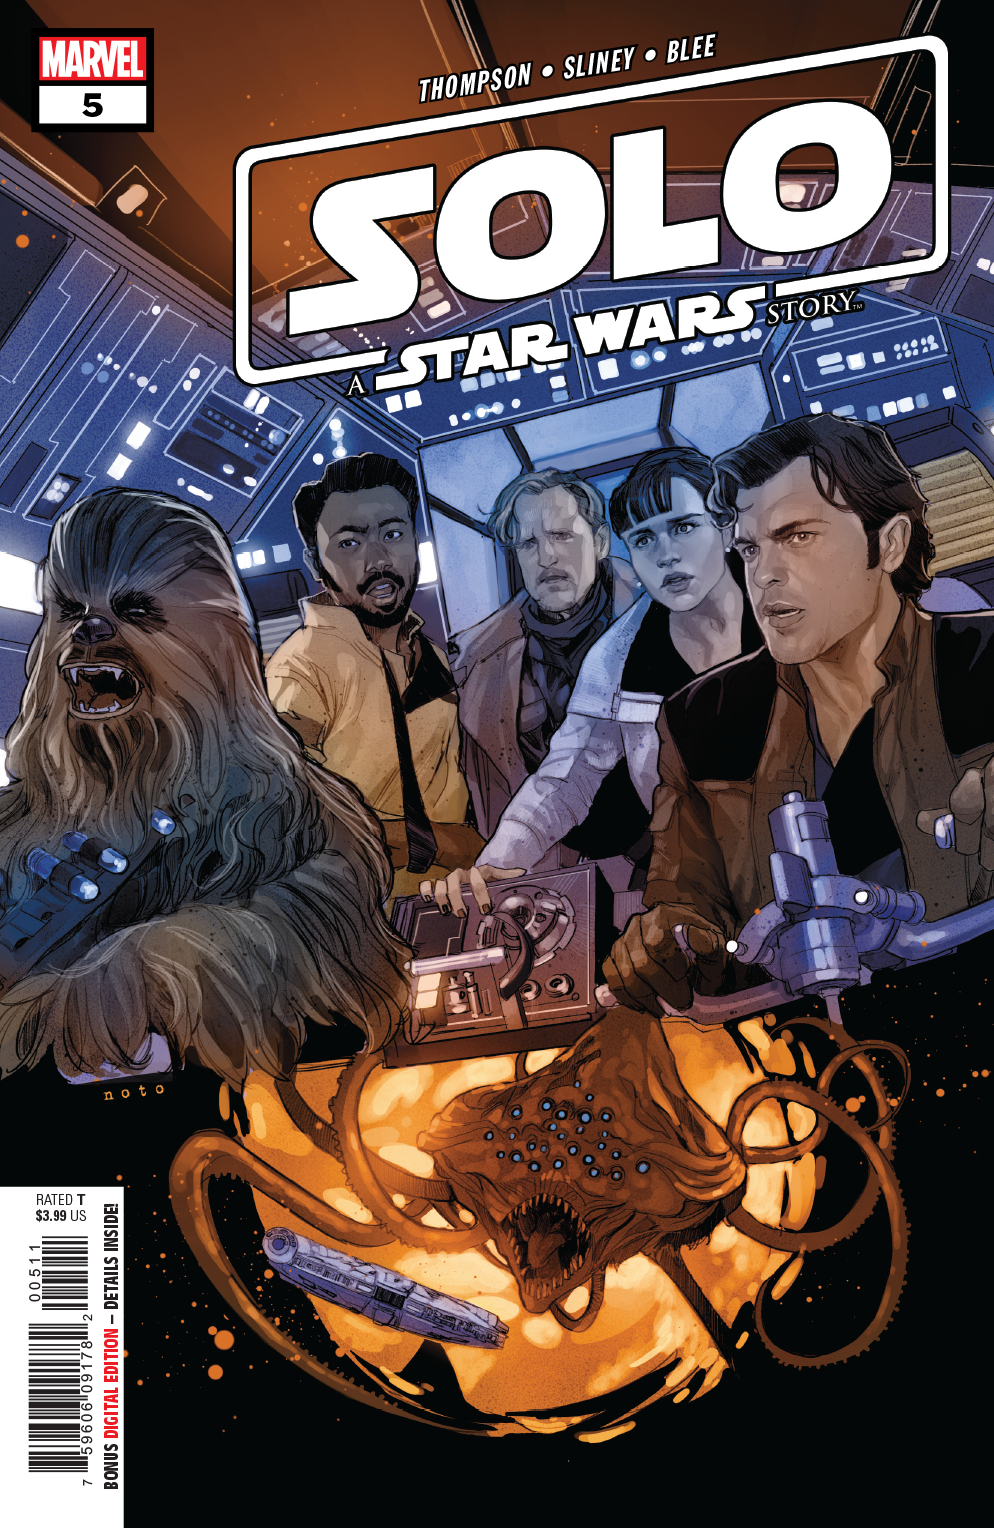 STAR WARS SOLO ADAPTATION #5 (OF 7)